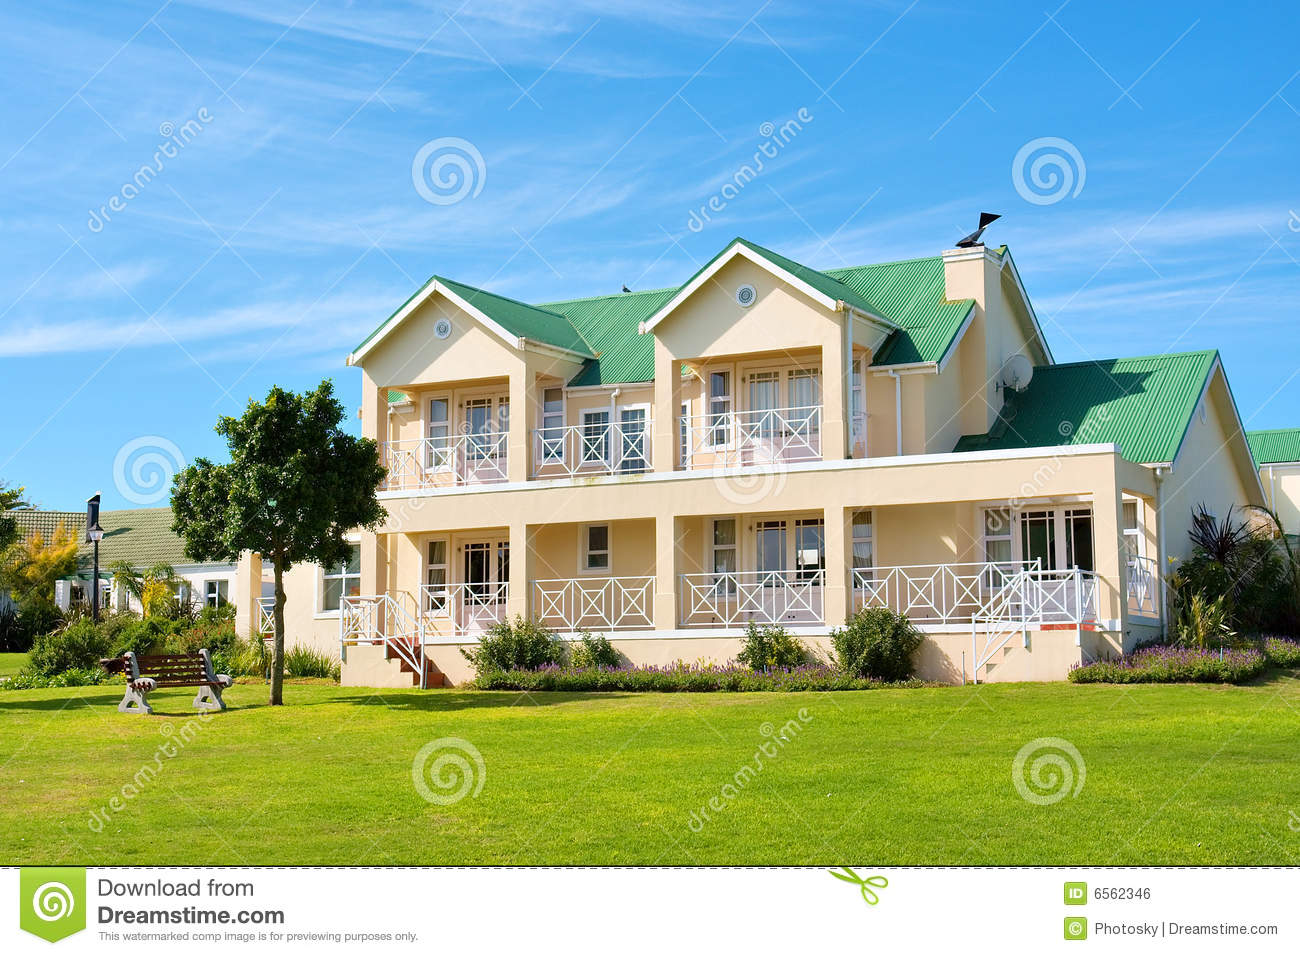 Nice big house lawn bench stock photo image 6562346 for Nice house picture